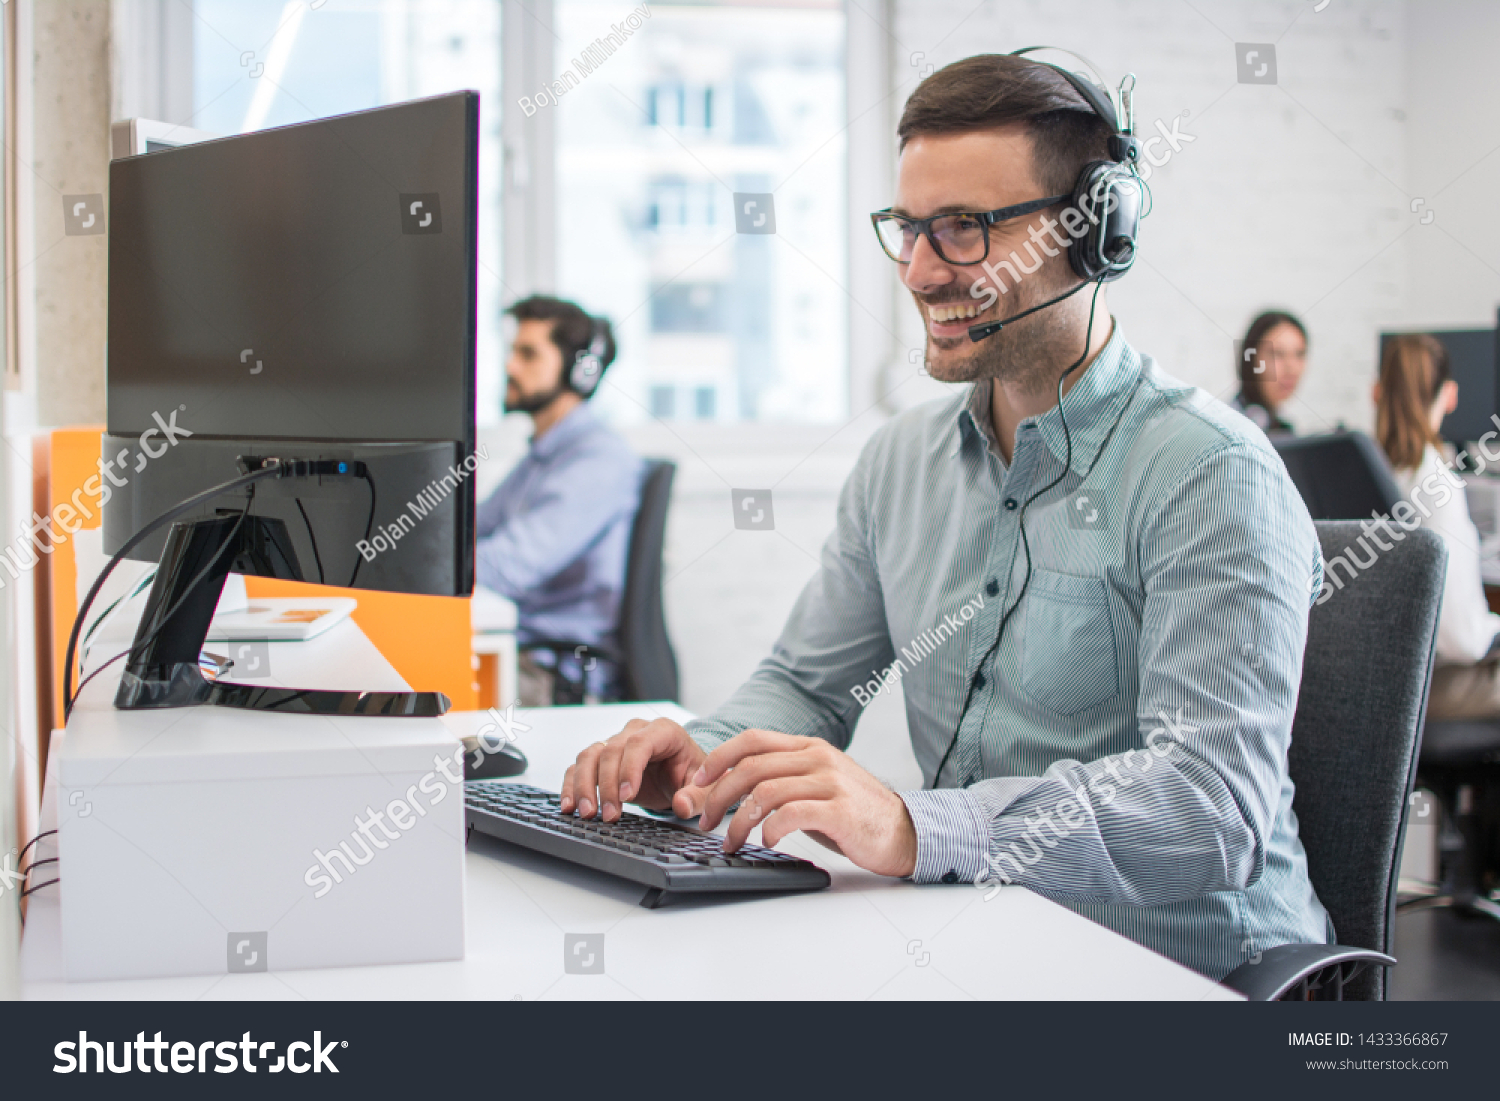 stock-photo-smiling-handsome-male-customer-support-phone-operator-with-headset-working-in-call-centre-group-of-1433366867